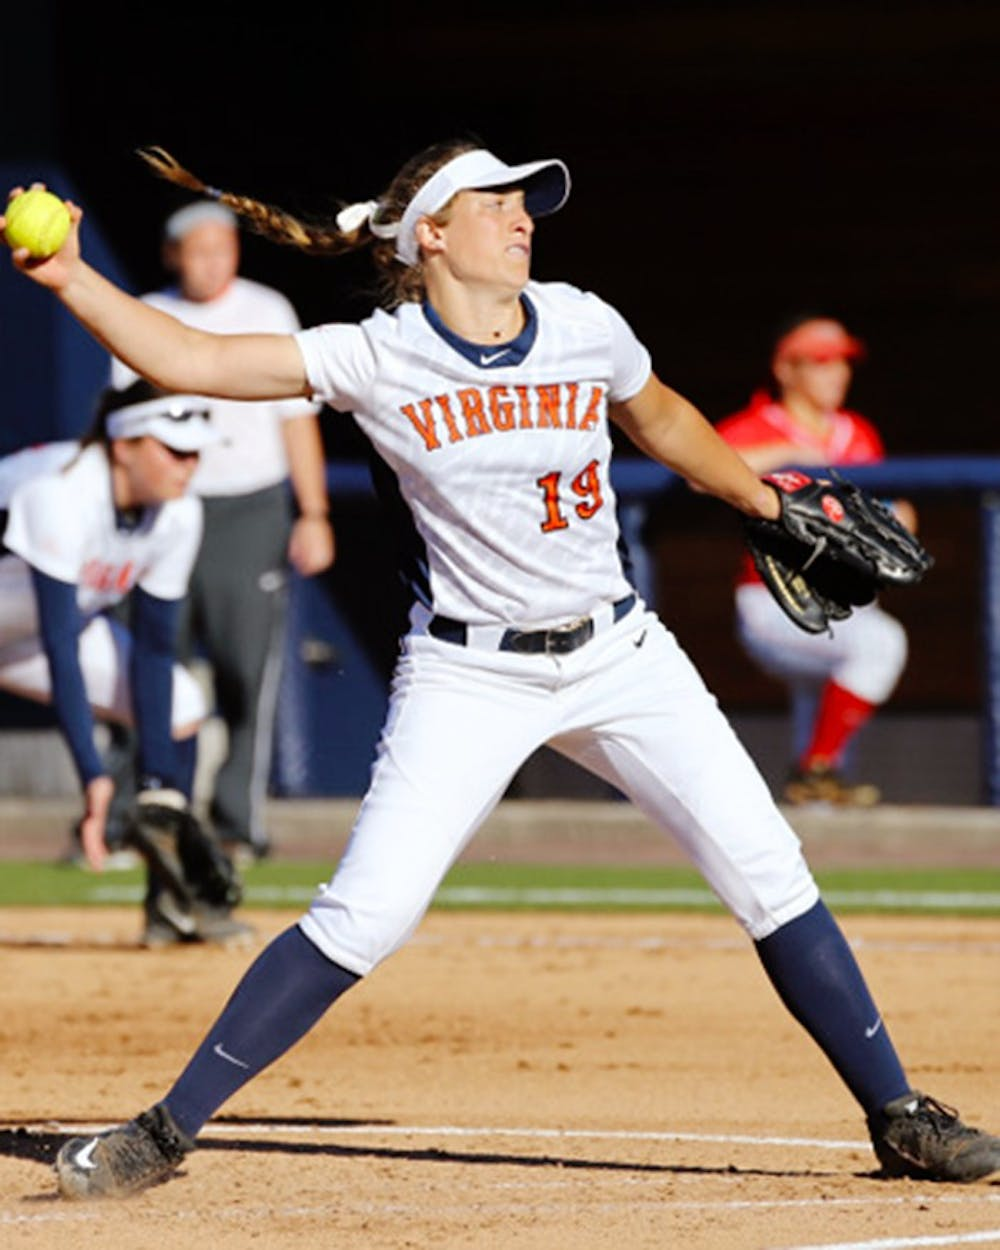 <p>Freshman pitcher Erika Osherow tossed a complete game shutout, allowing only three hits  in game one of a doubleheader Saturday. The Cavaliers defeated Georgia Tech 6-0 to set the tone for a series win in Atlanta. </p>